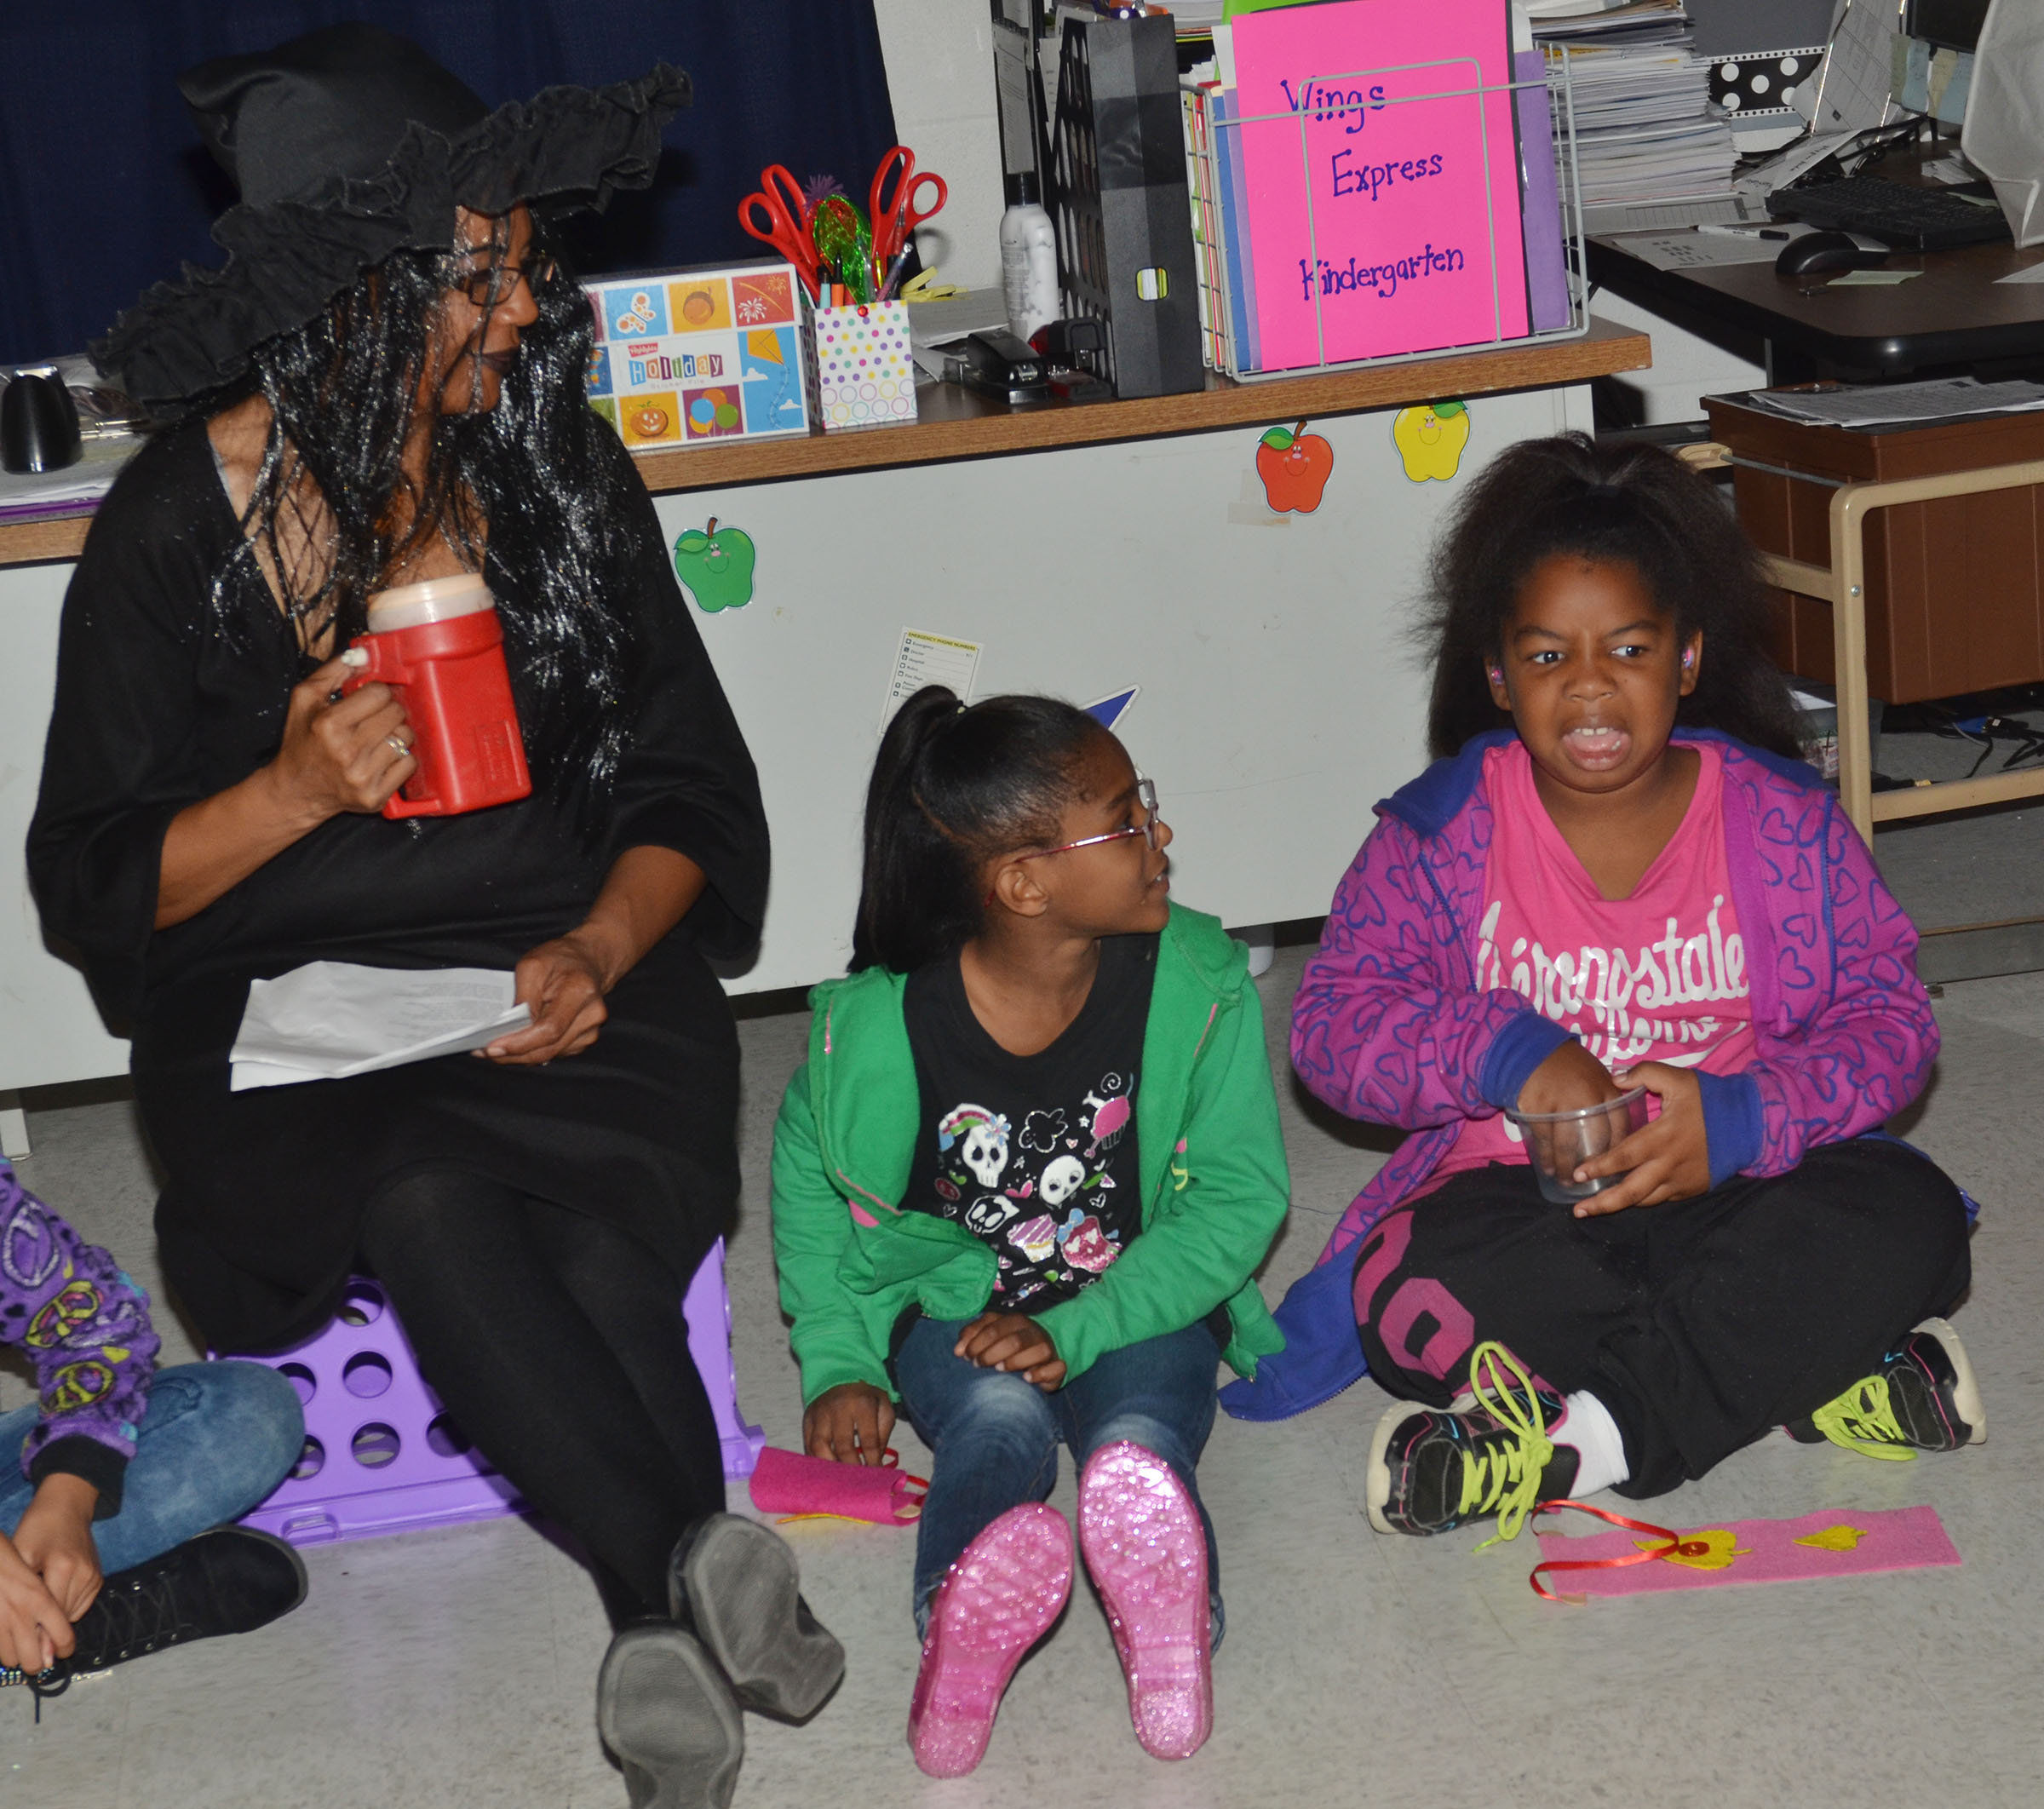 CES third-grade teacher Doretha Sanders, at left, tells a spooky story as students Maliyah Harris, center, and KaMiya Williams feel objects in the dark.